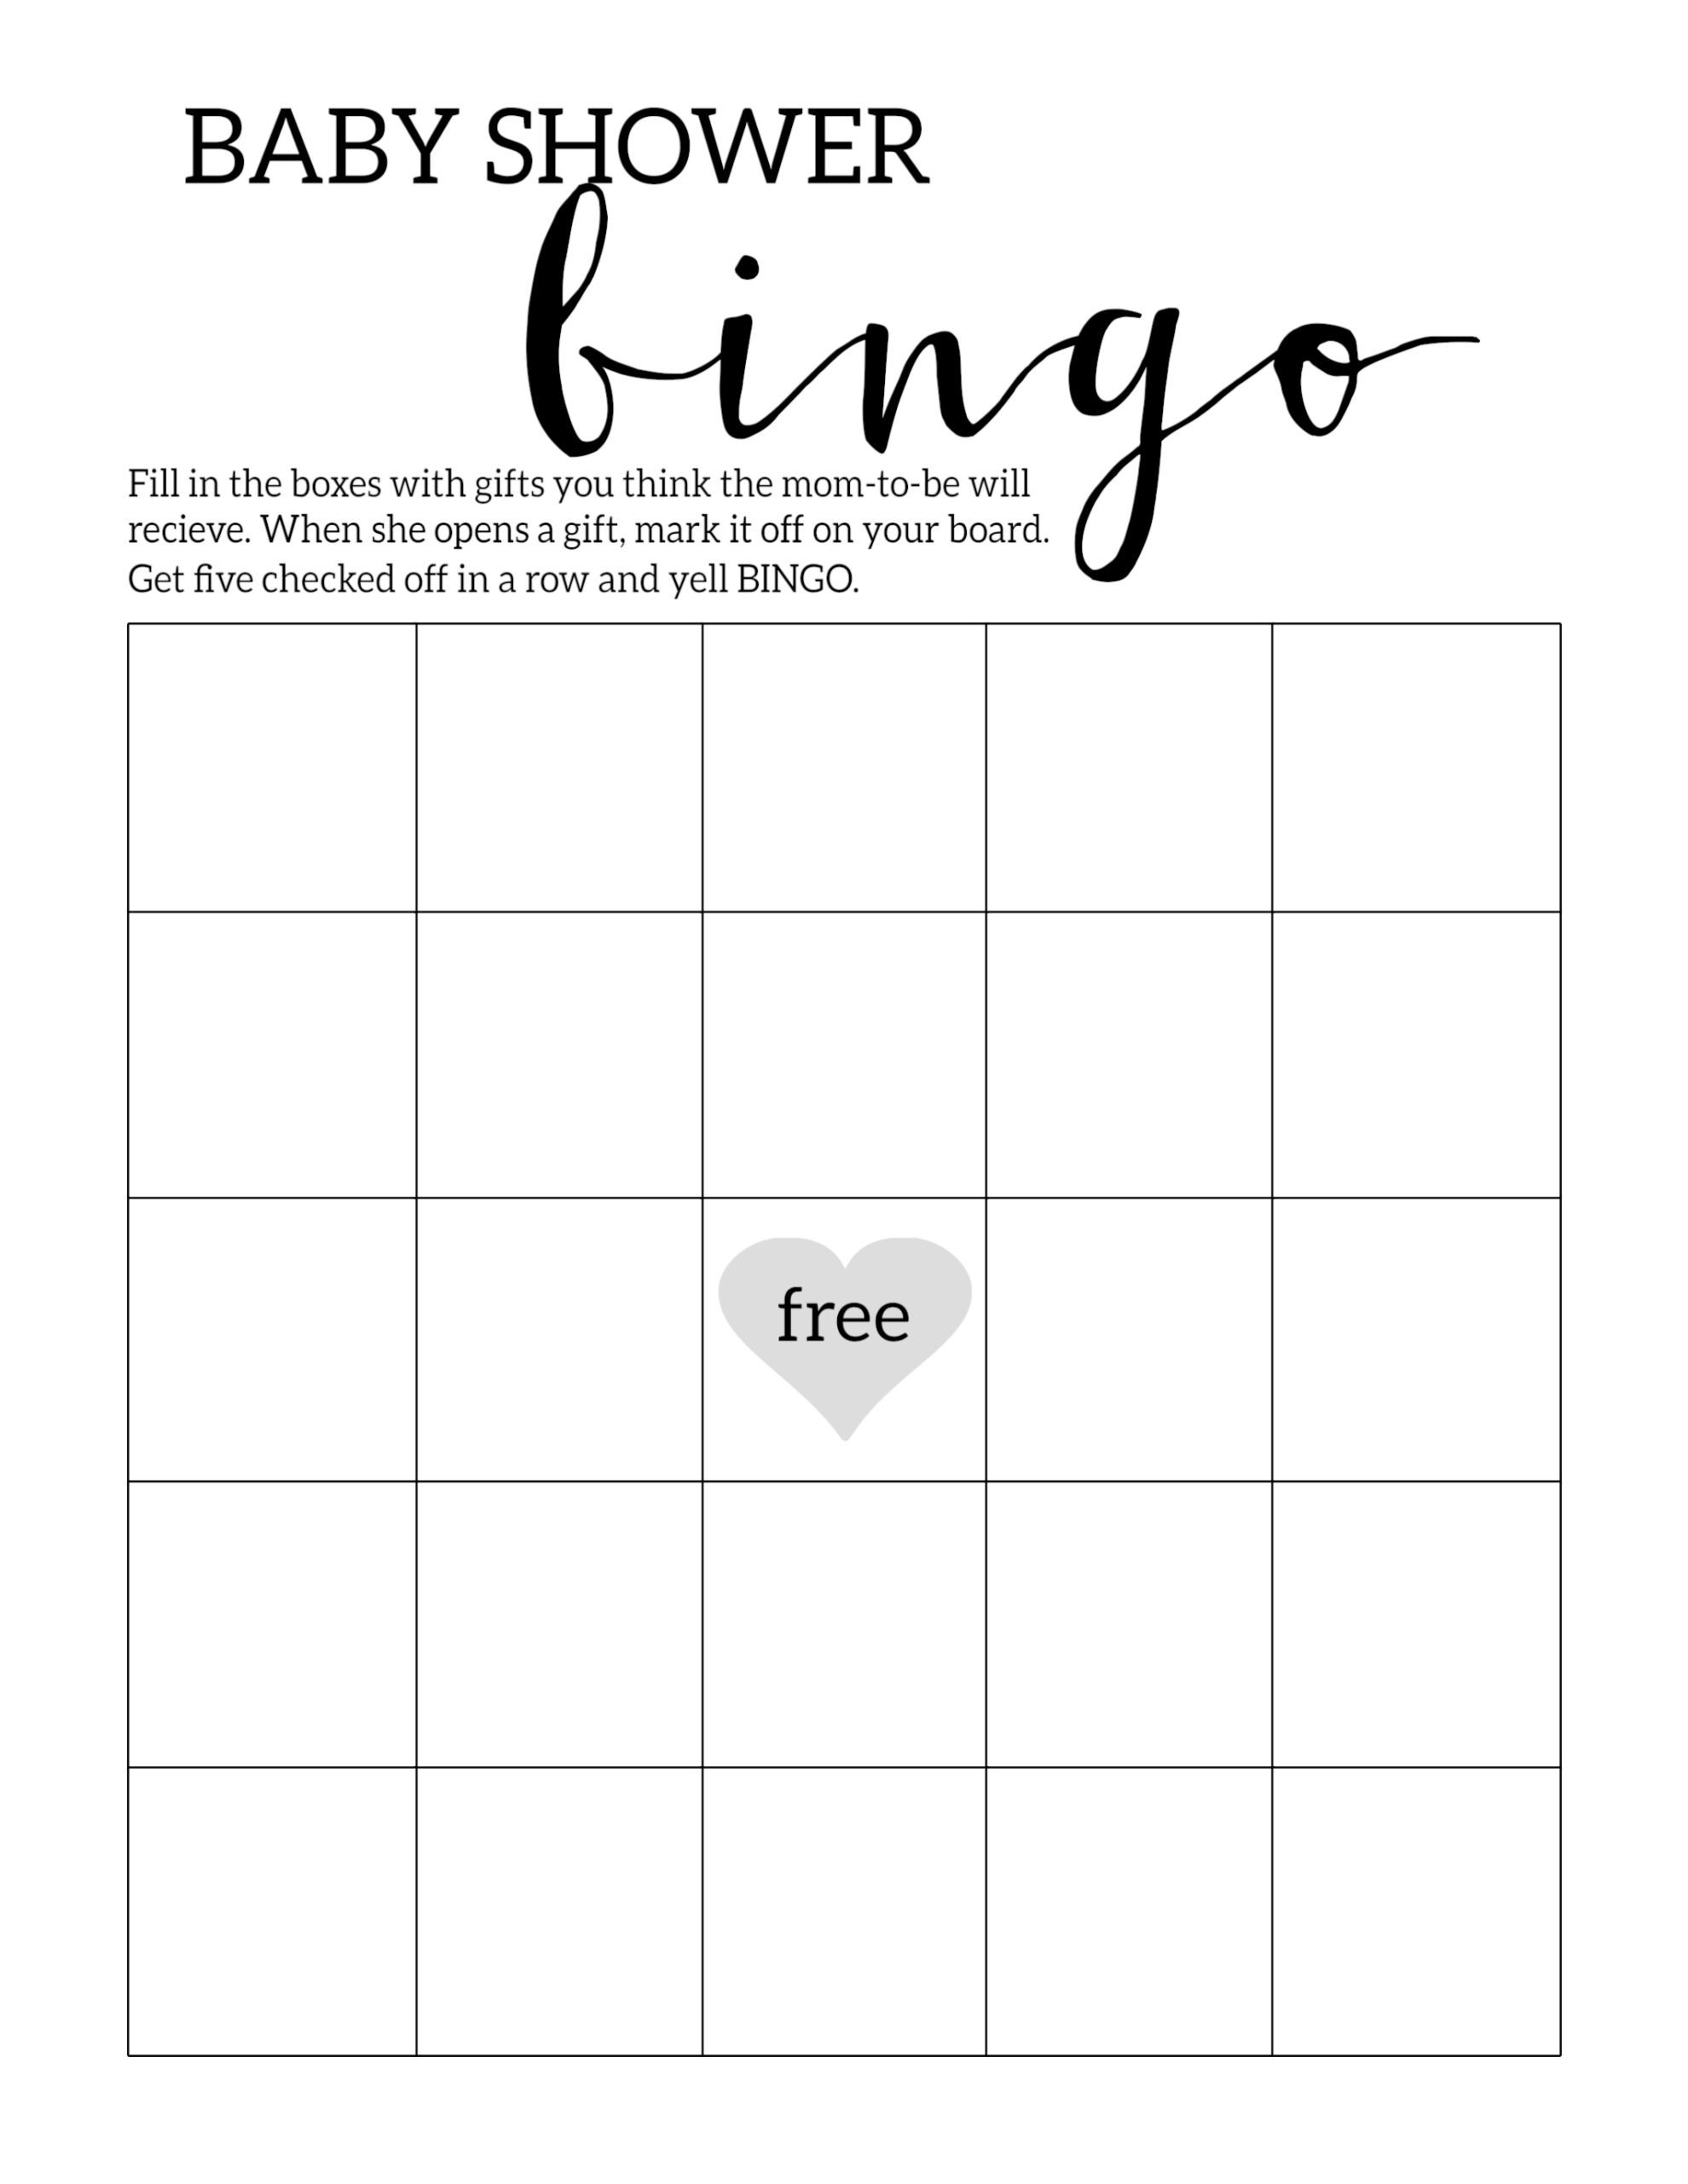 Baby Shower Bingo Printable Cards Template - Paper Trail Design - Free Printable Baby Shower Bingo Cards